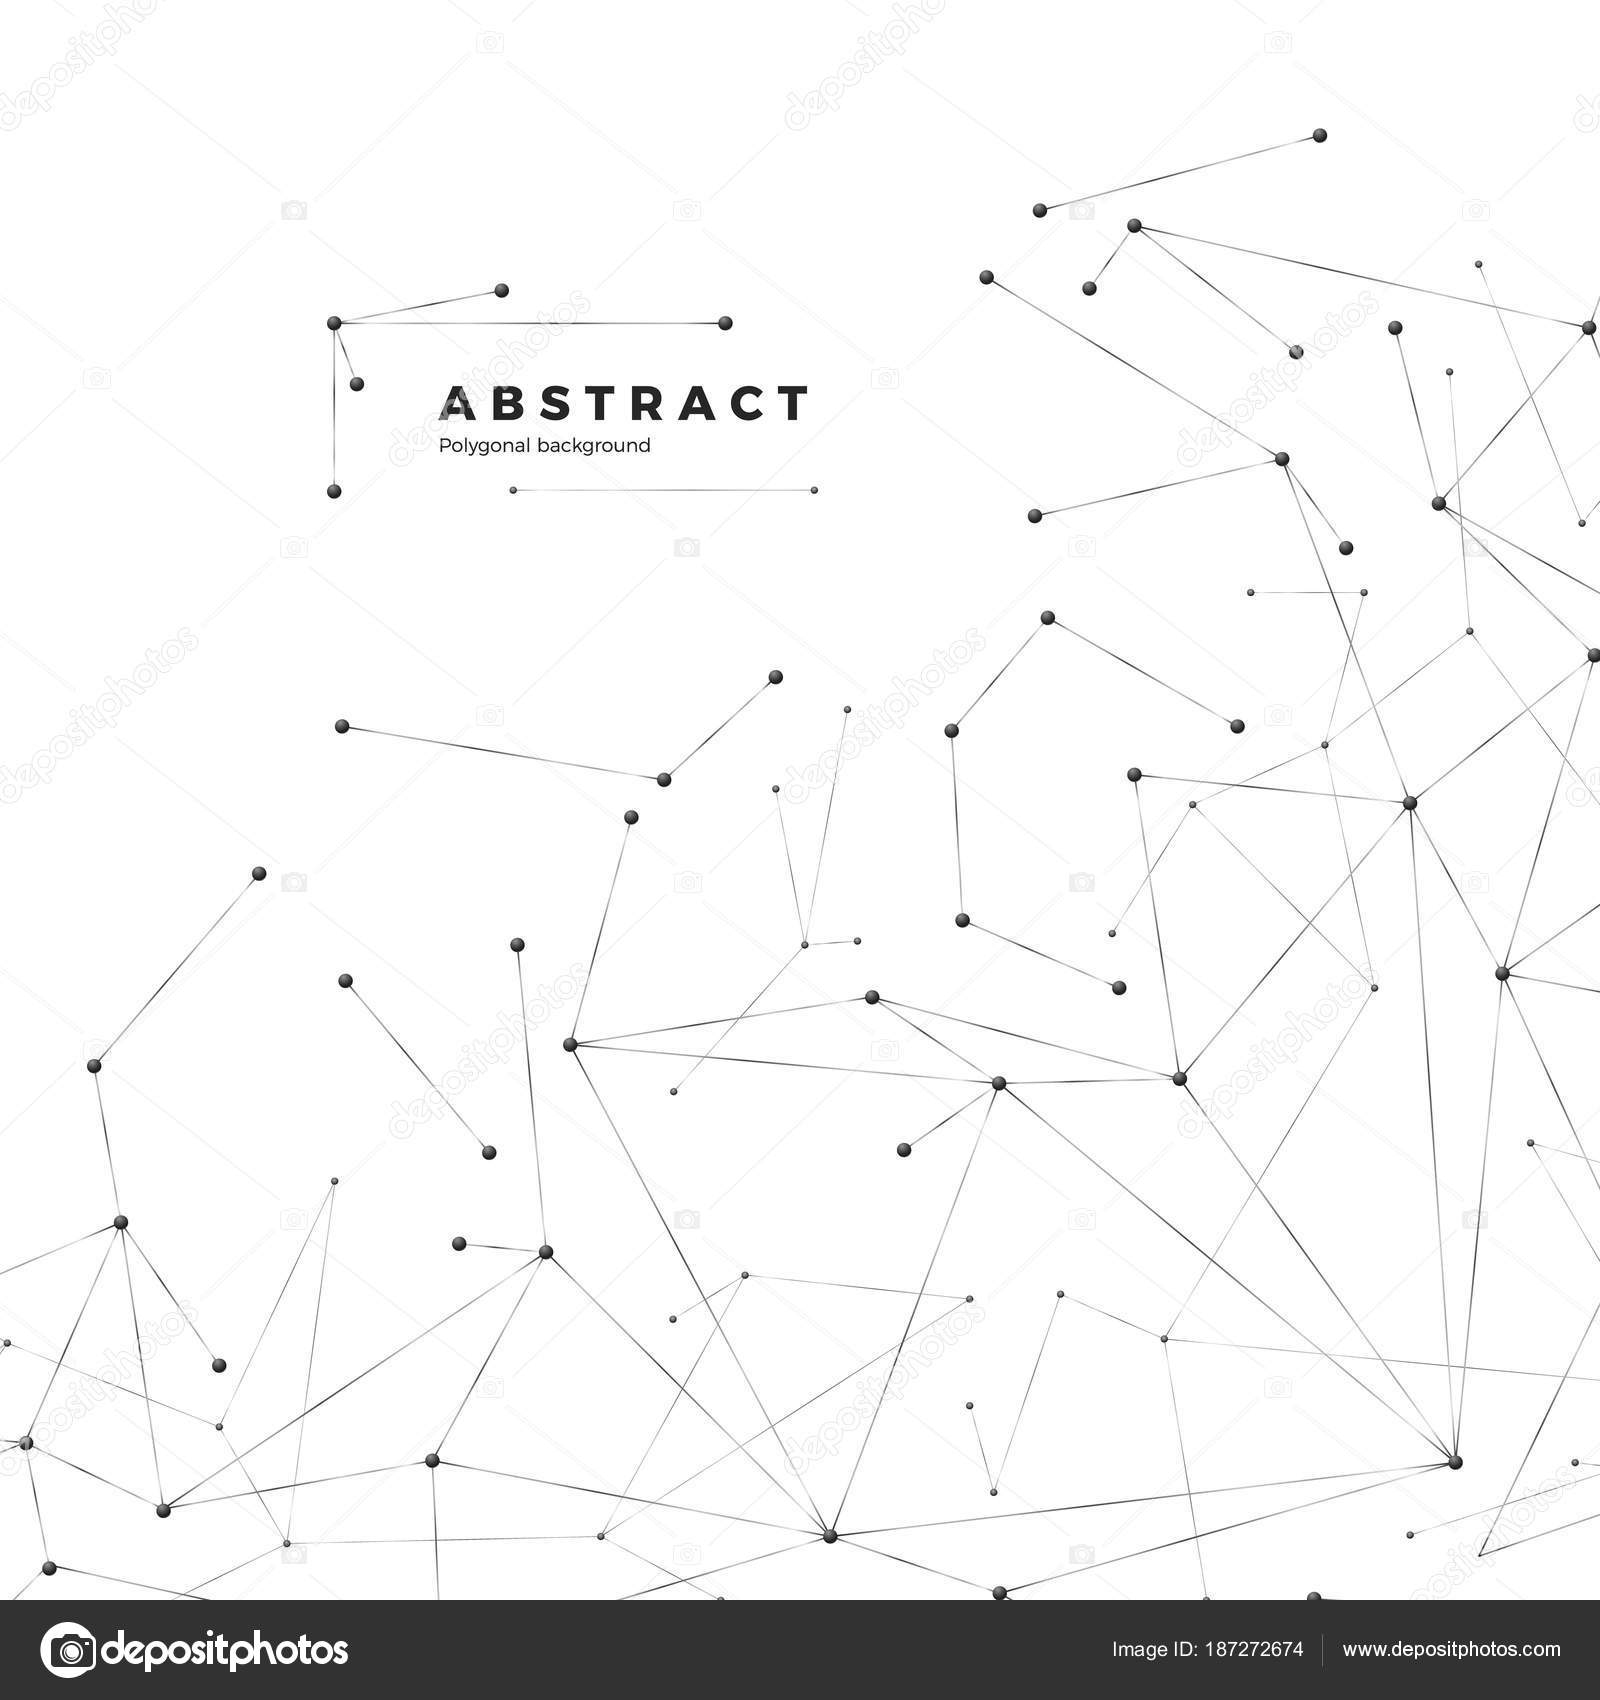 Technology and science background abstract web and nodes plexus technology and science background abstract web and nodes plexus atom structure vector illustration ccuart Image collections